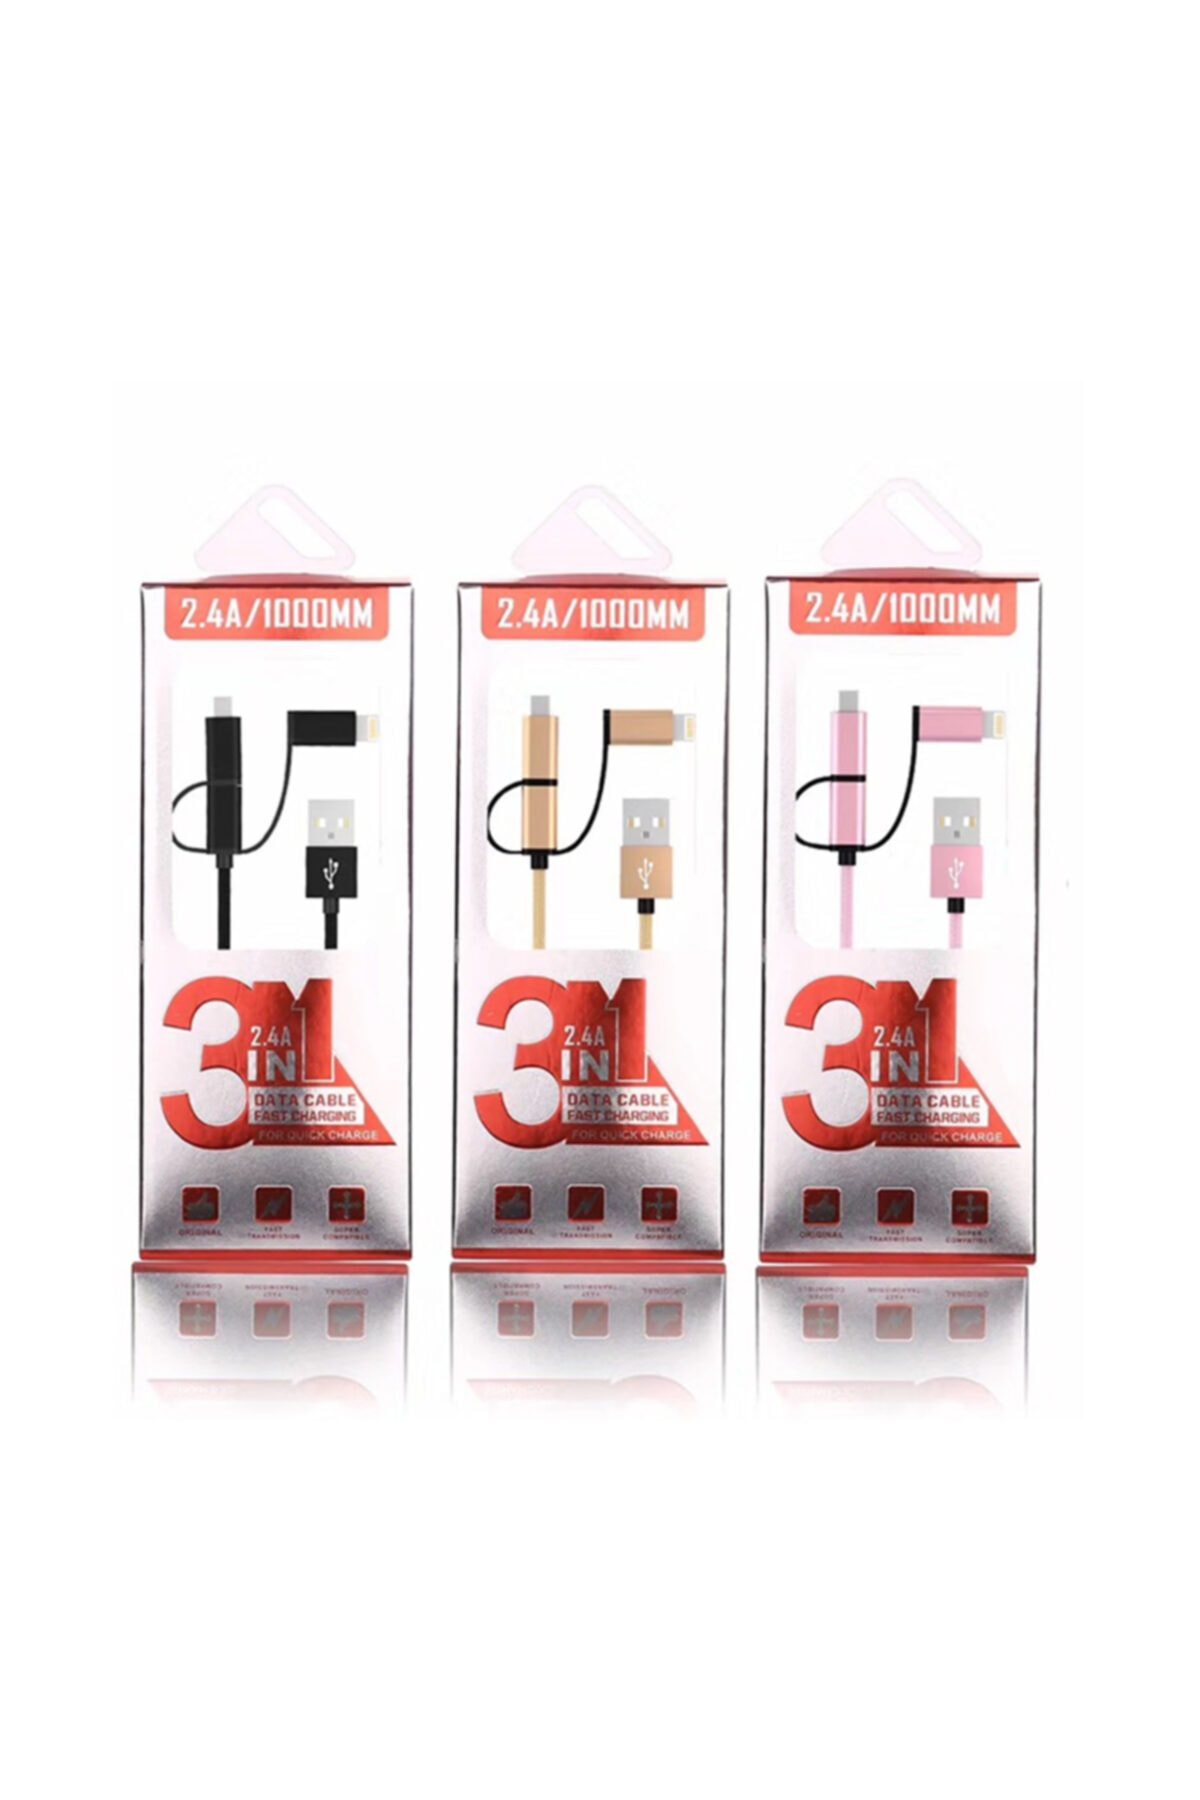 Ally Mobile Ally 3in1 2.4a Type-c Micro Usb Iphone 5,6,7,8 Halat Usb Kablo 1